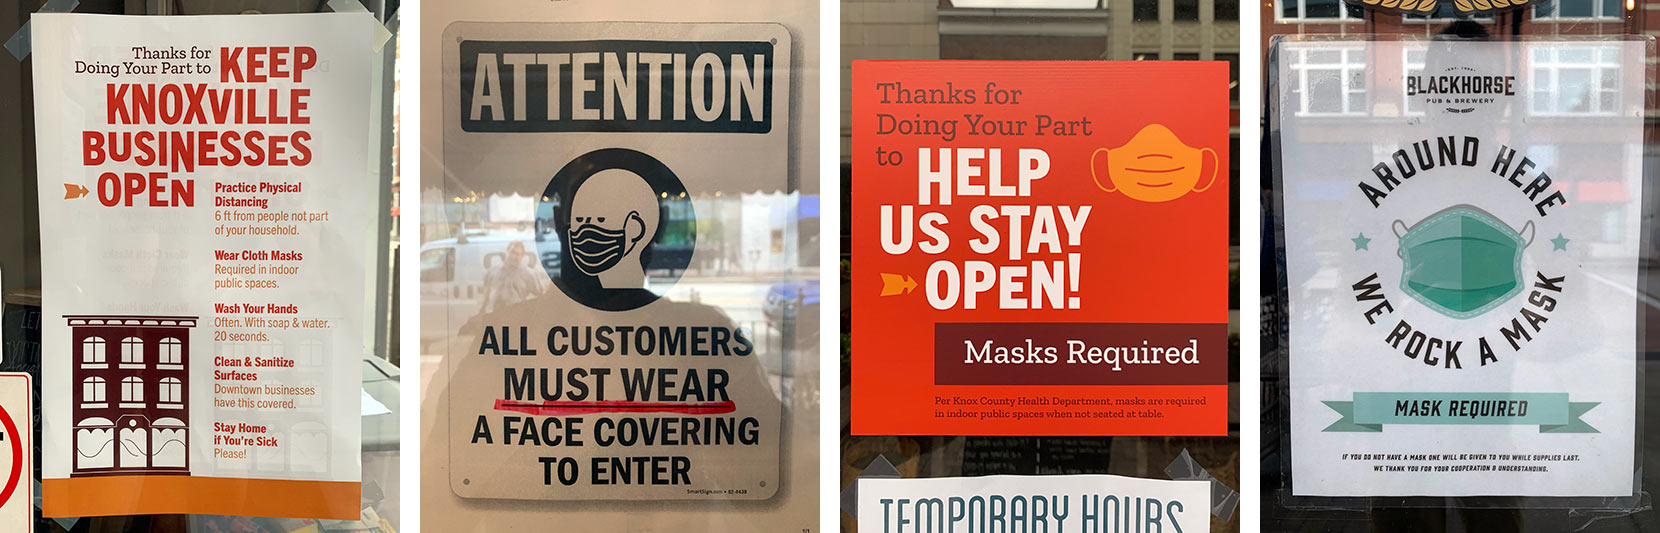 four different mask requirement signs for restaurants and retailers in downtown knoxville during COVID